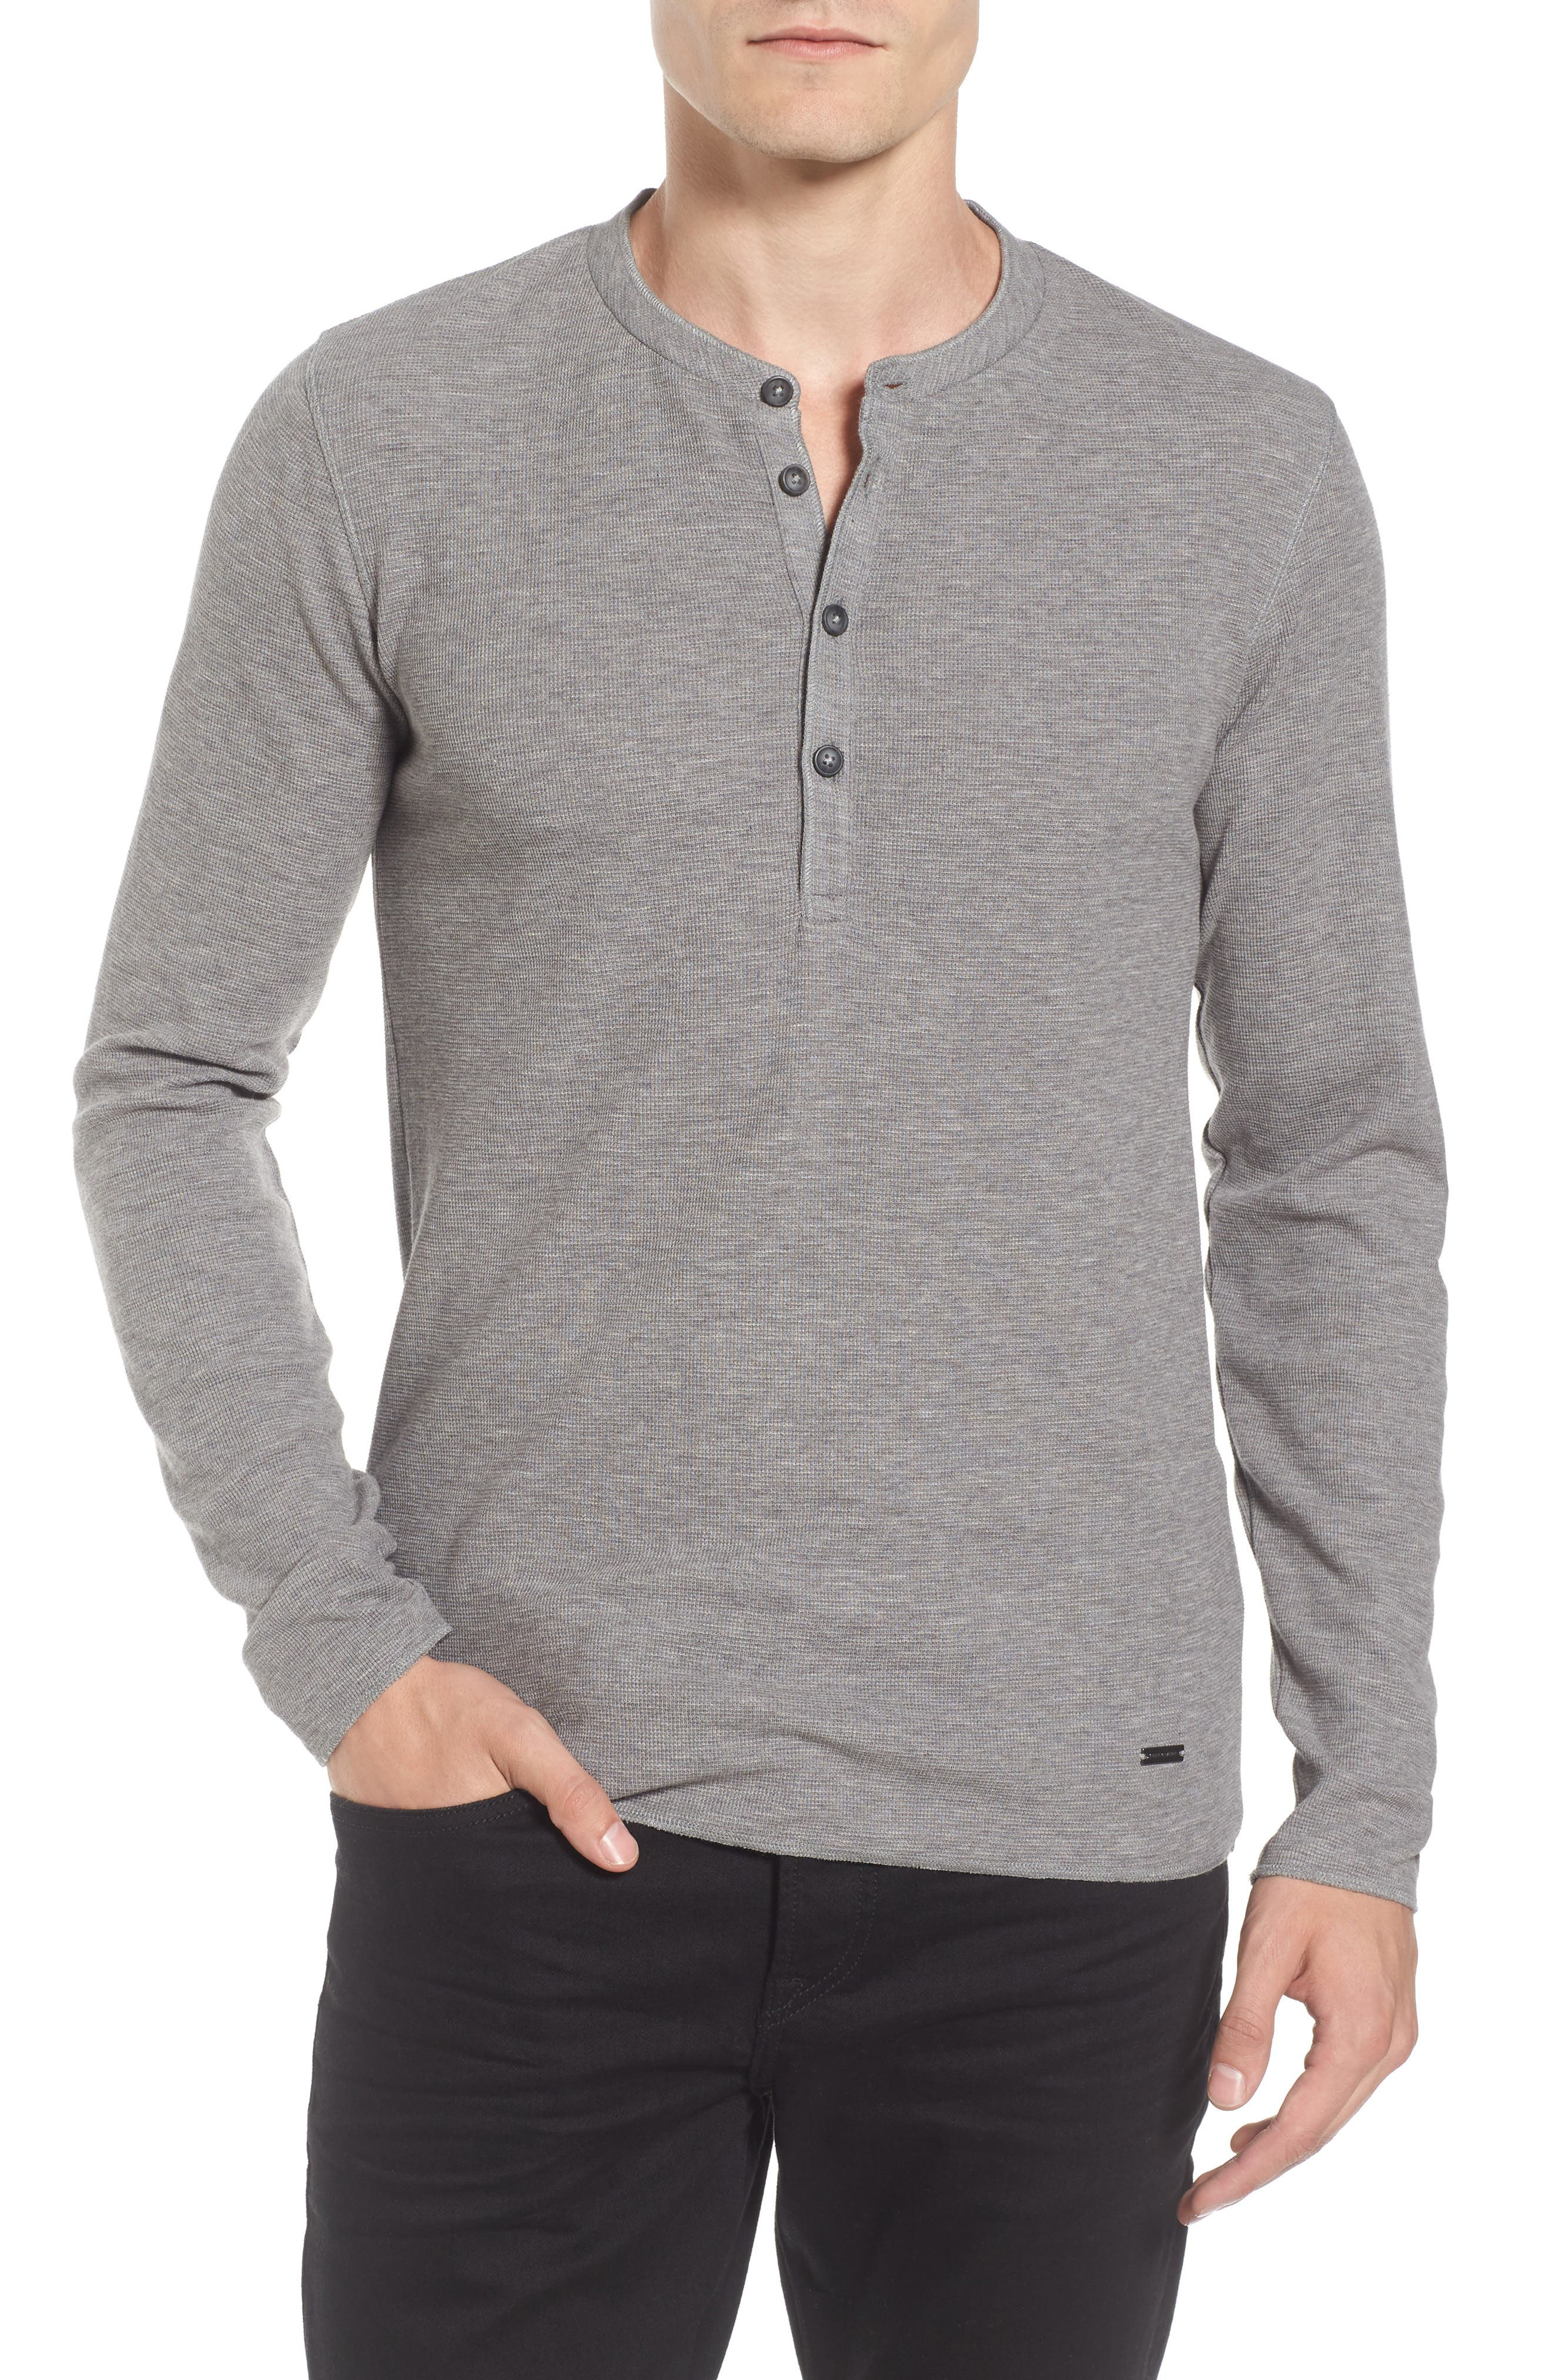 Topsider Thermal Henley,                         Main,                         color, Light Pastel/ Grey